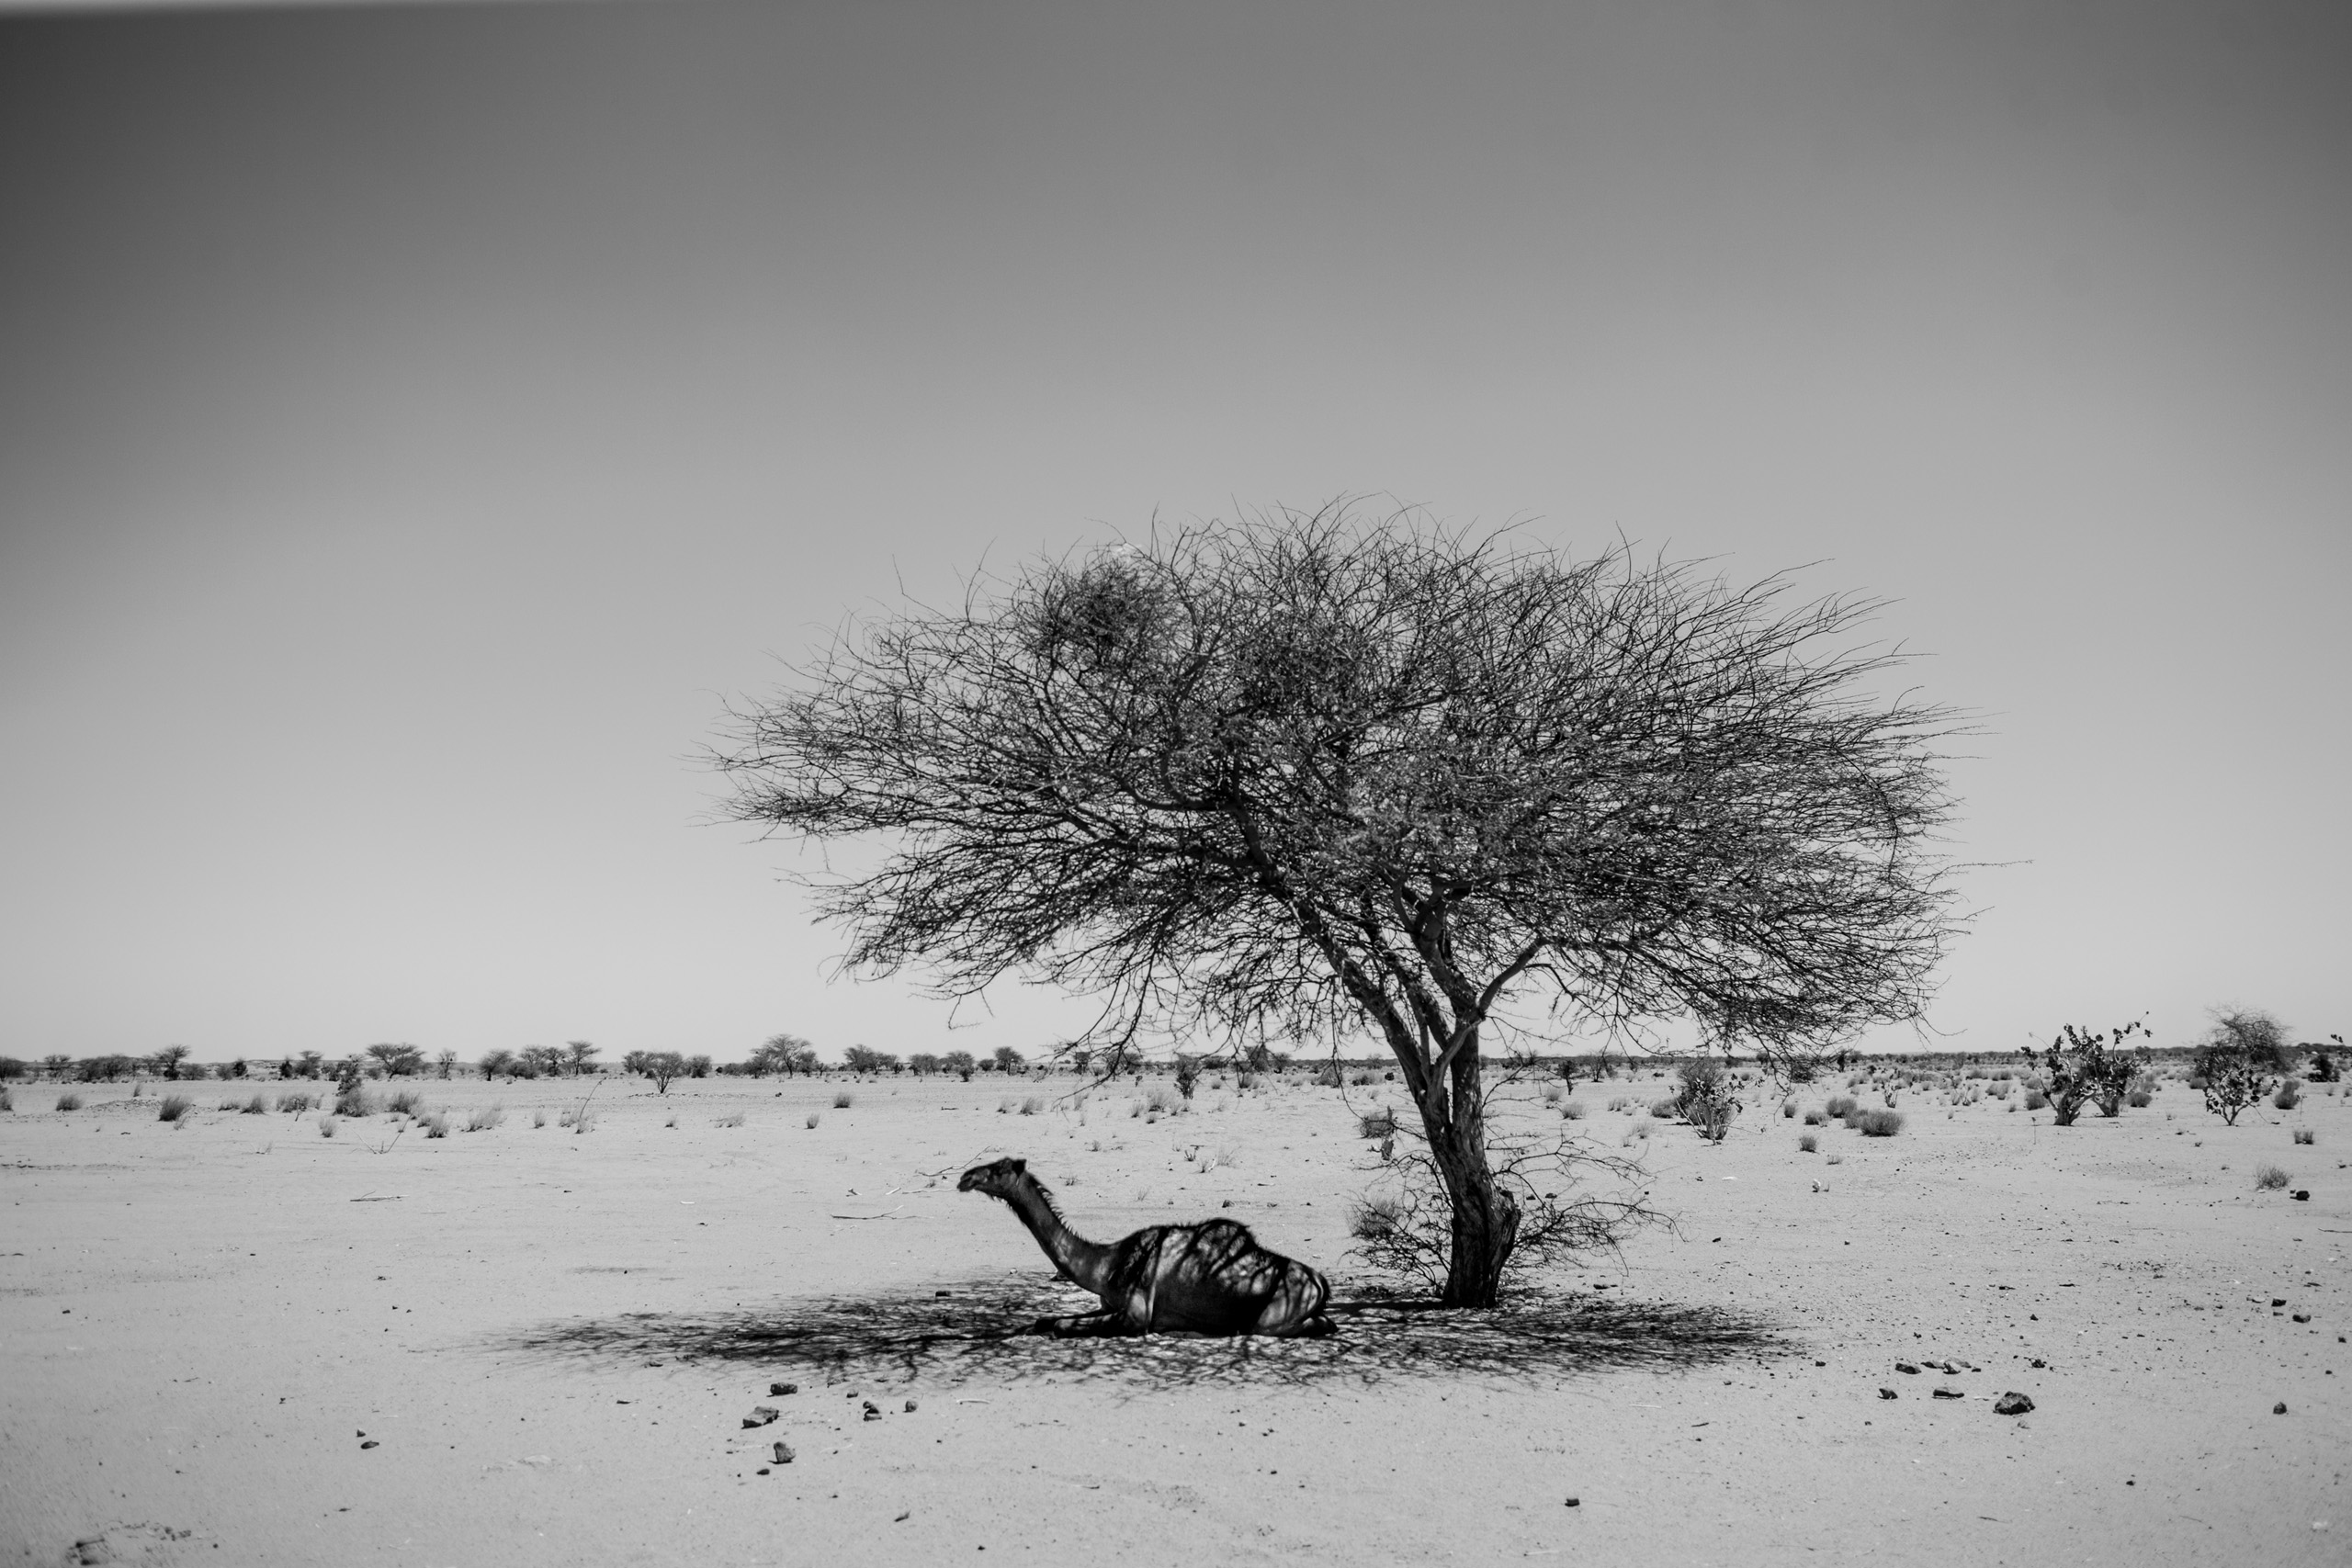 A camel rests under a tree in the desert north of Agadez, Niger. Temperatures in the Sahara easily rise to 110 F during the day and plummet to the low 50s at night.